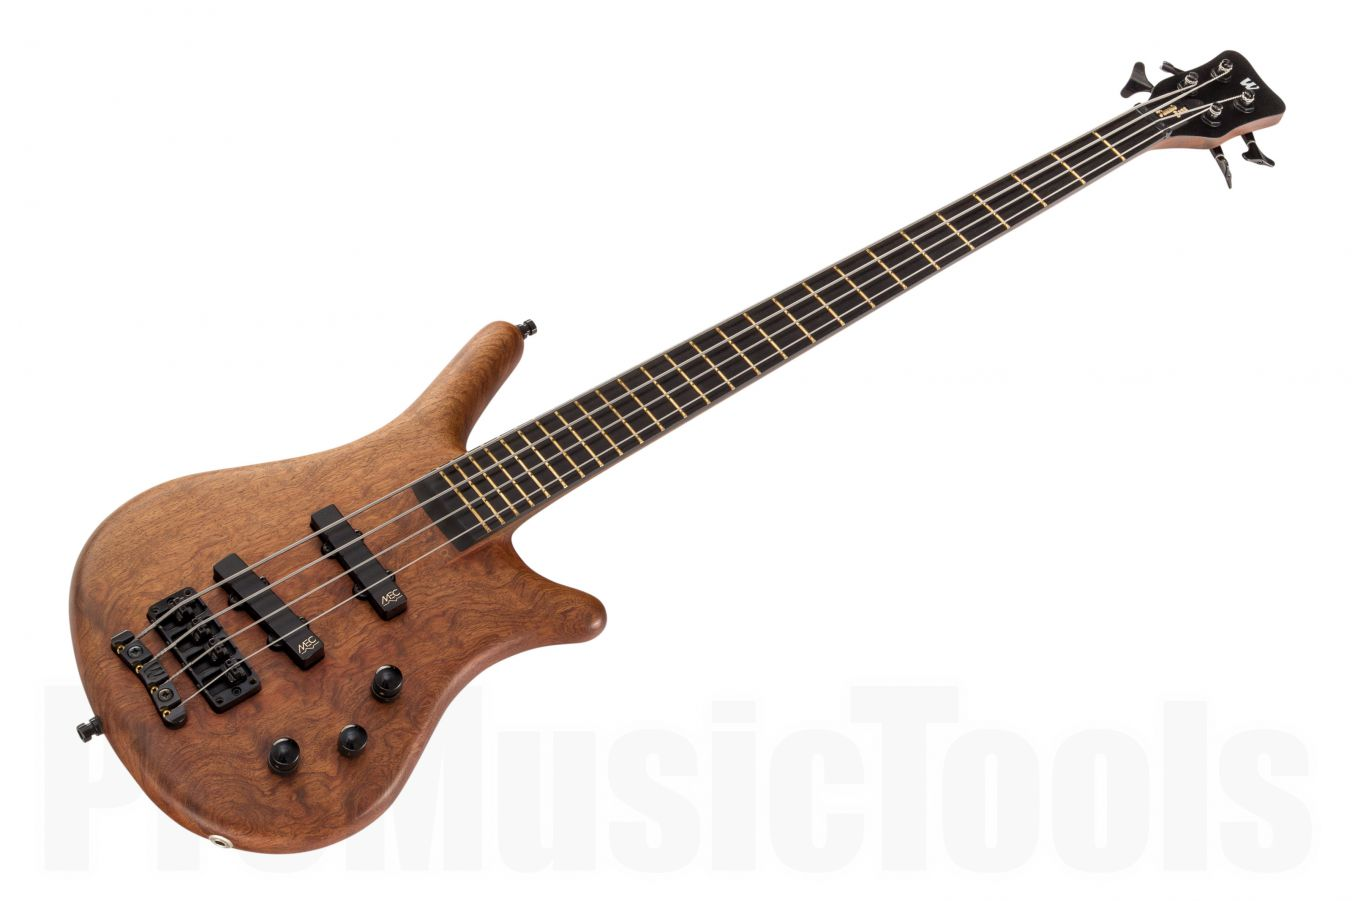 Warwick Thumb 4 NT Custom Shop - Bubinga - Handcrafted in Germany